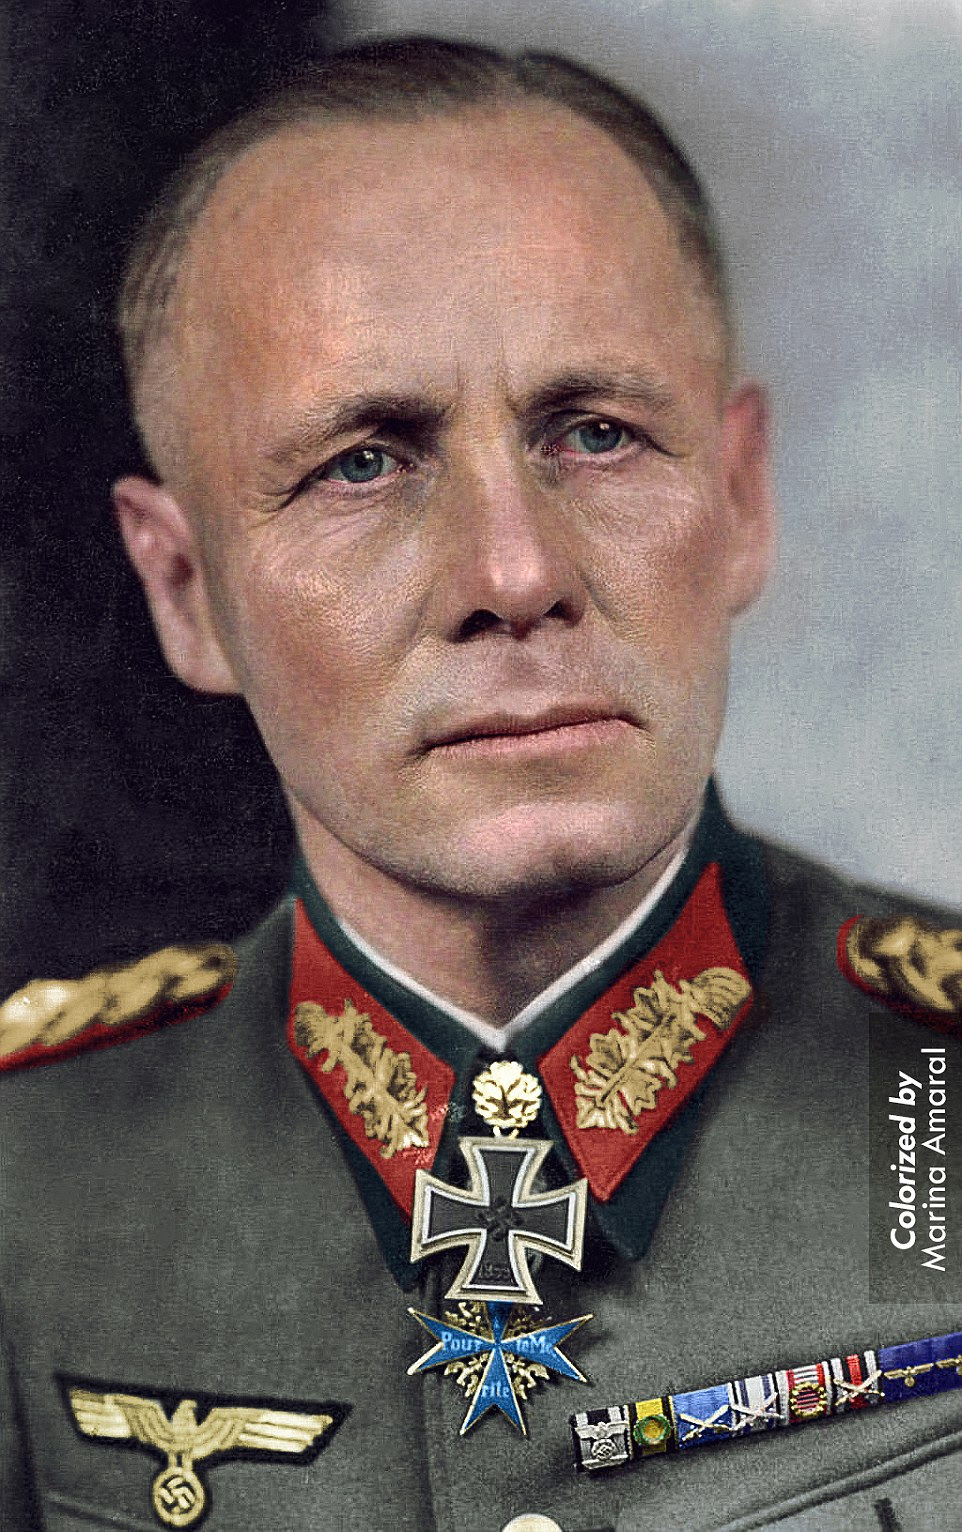 The Desert Fox: Erwin Rommelwas a senior German Army officer during World War II. He was implicated in a plot to overthrow Hitler and in 1944 he took his own life by biting into a cyanide capsule